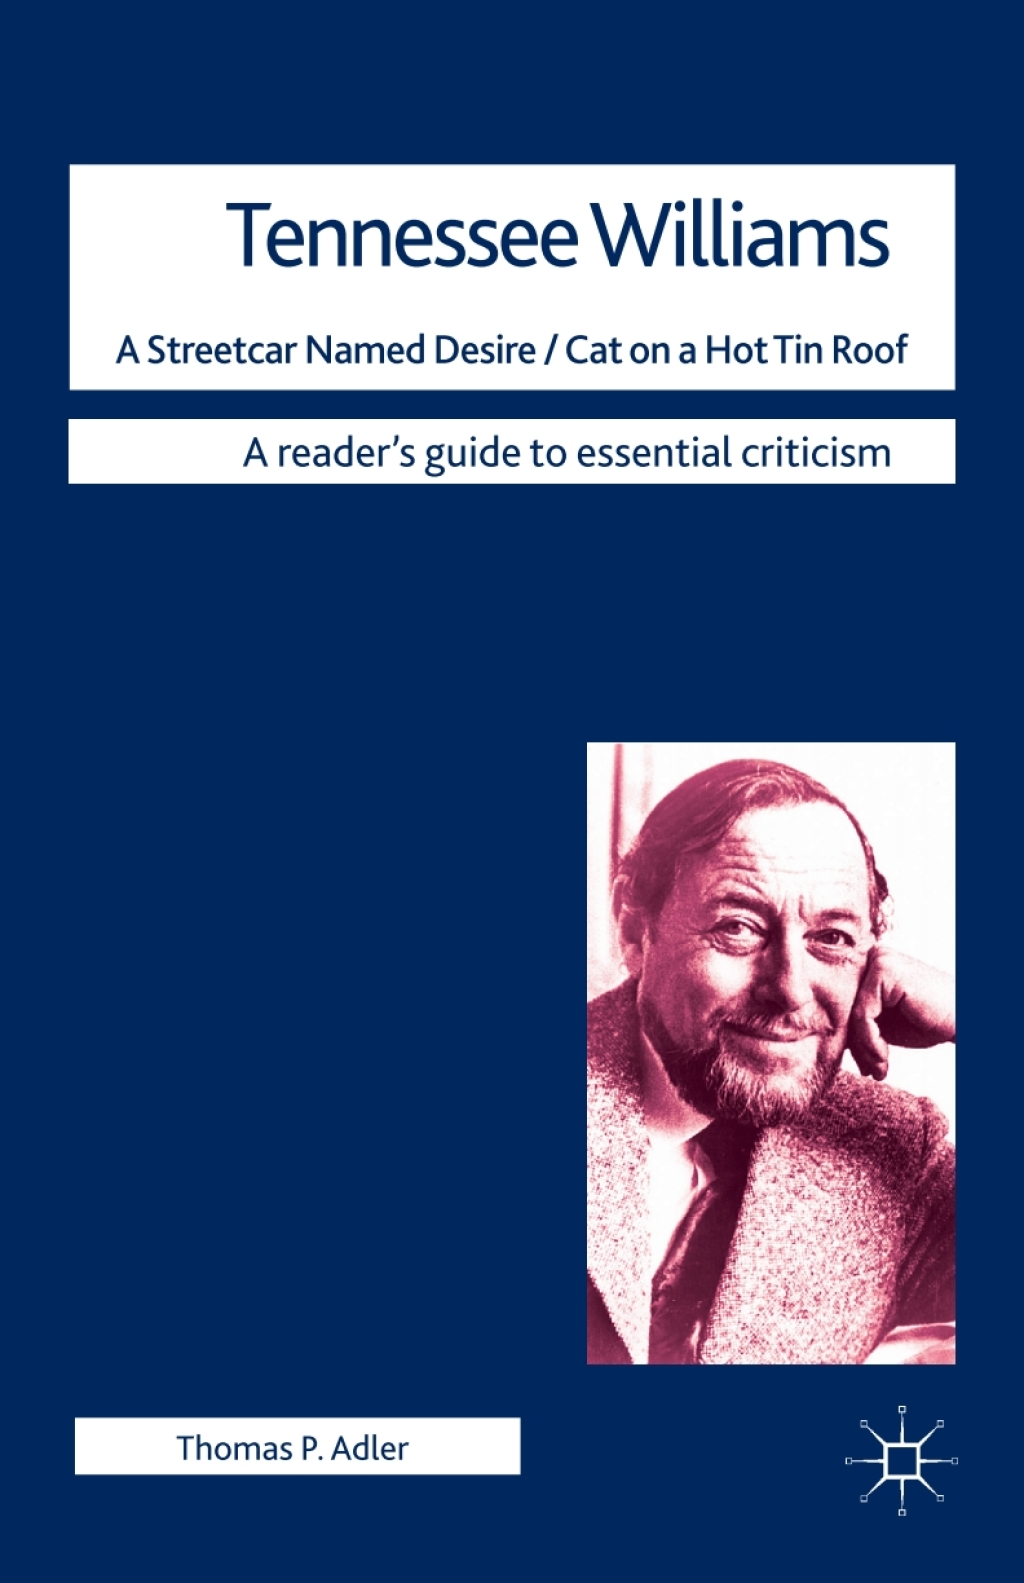 Tennessee Williams - A Streetcar Named Desire/Cat on a Hot Tin Roof (ebook) eBooks